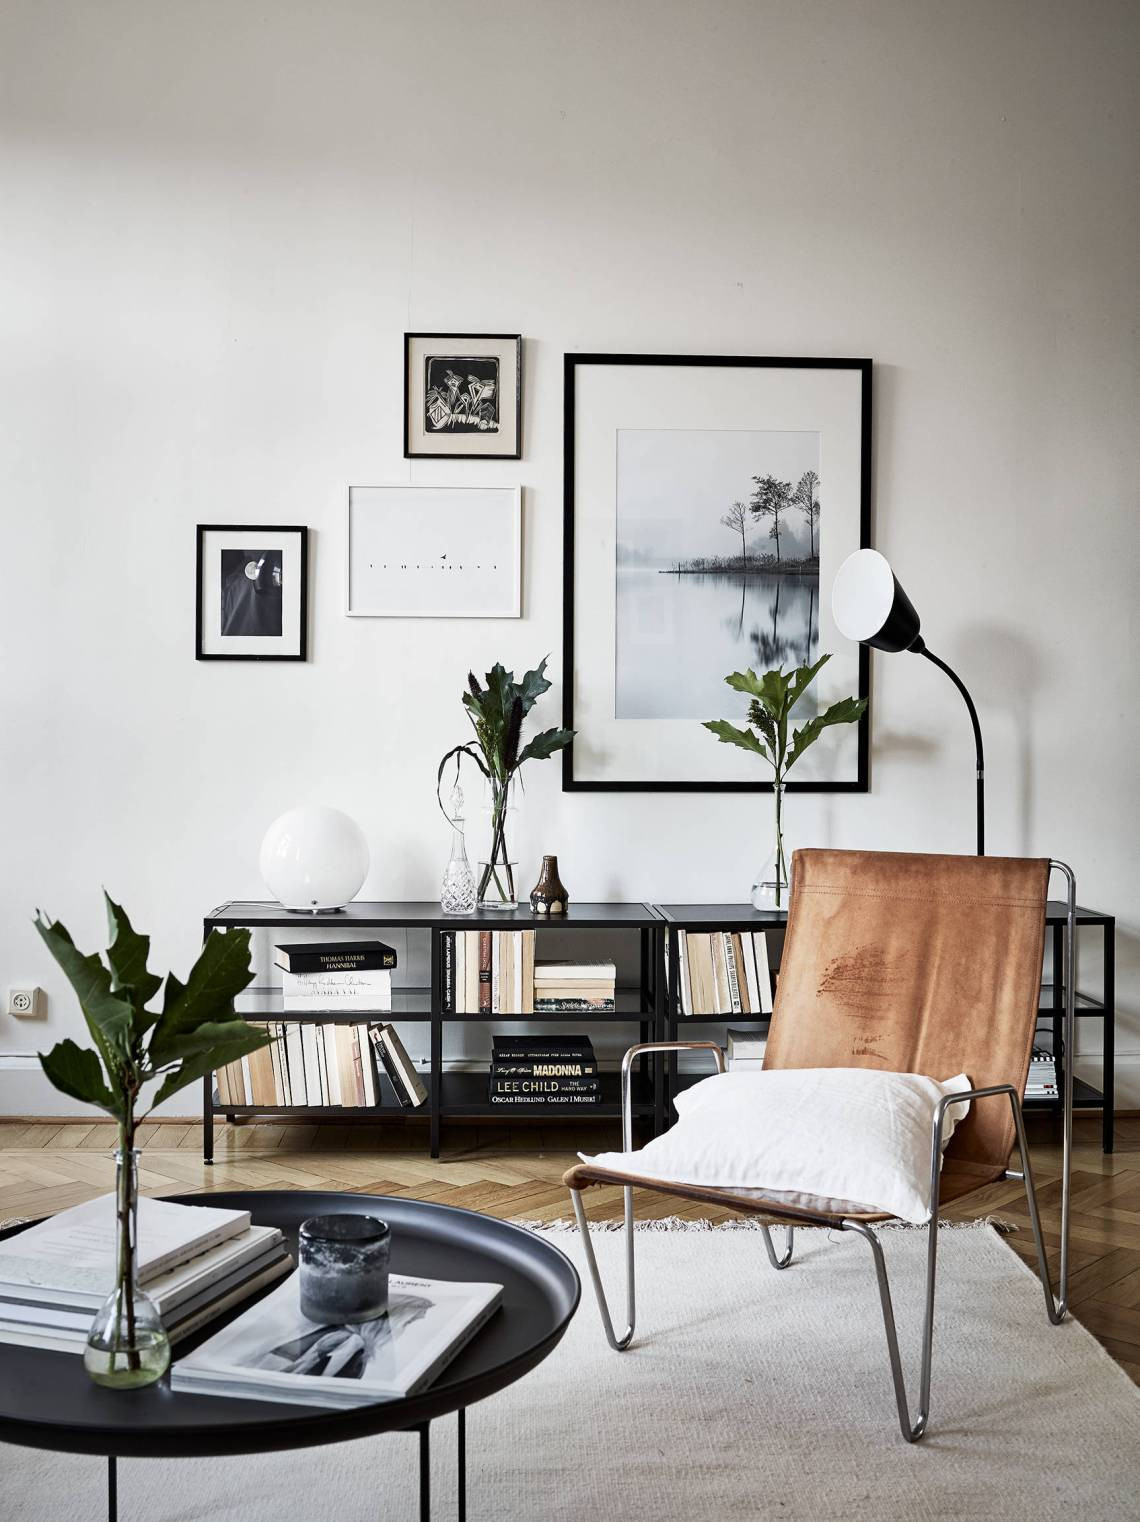 Neutral and monochrome coco lapine designcoco lapine design - Interior painting ideas pinterest ...